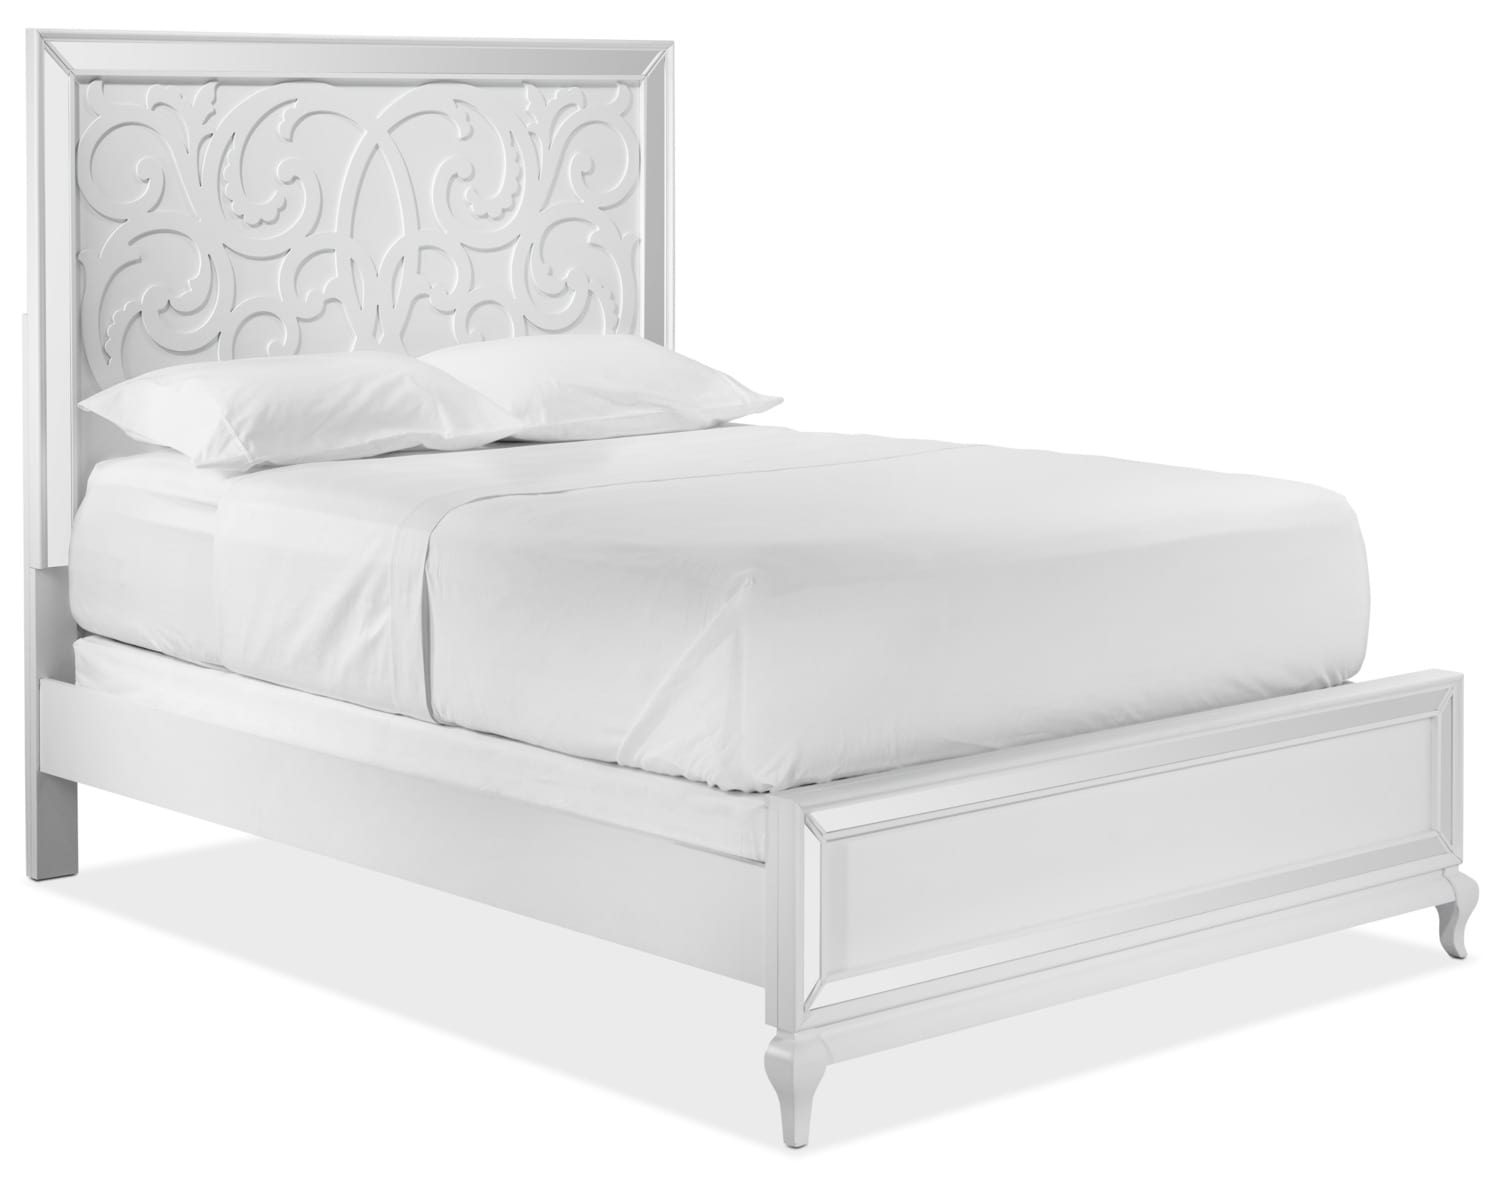 Arctic Ice King Bed - White